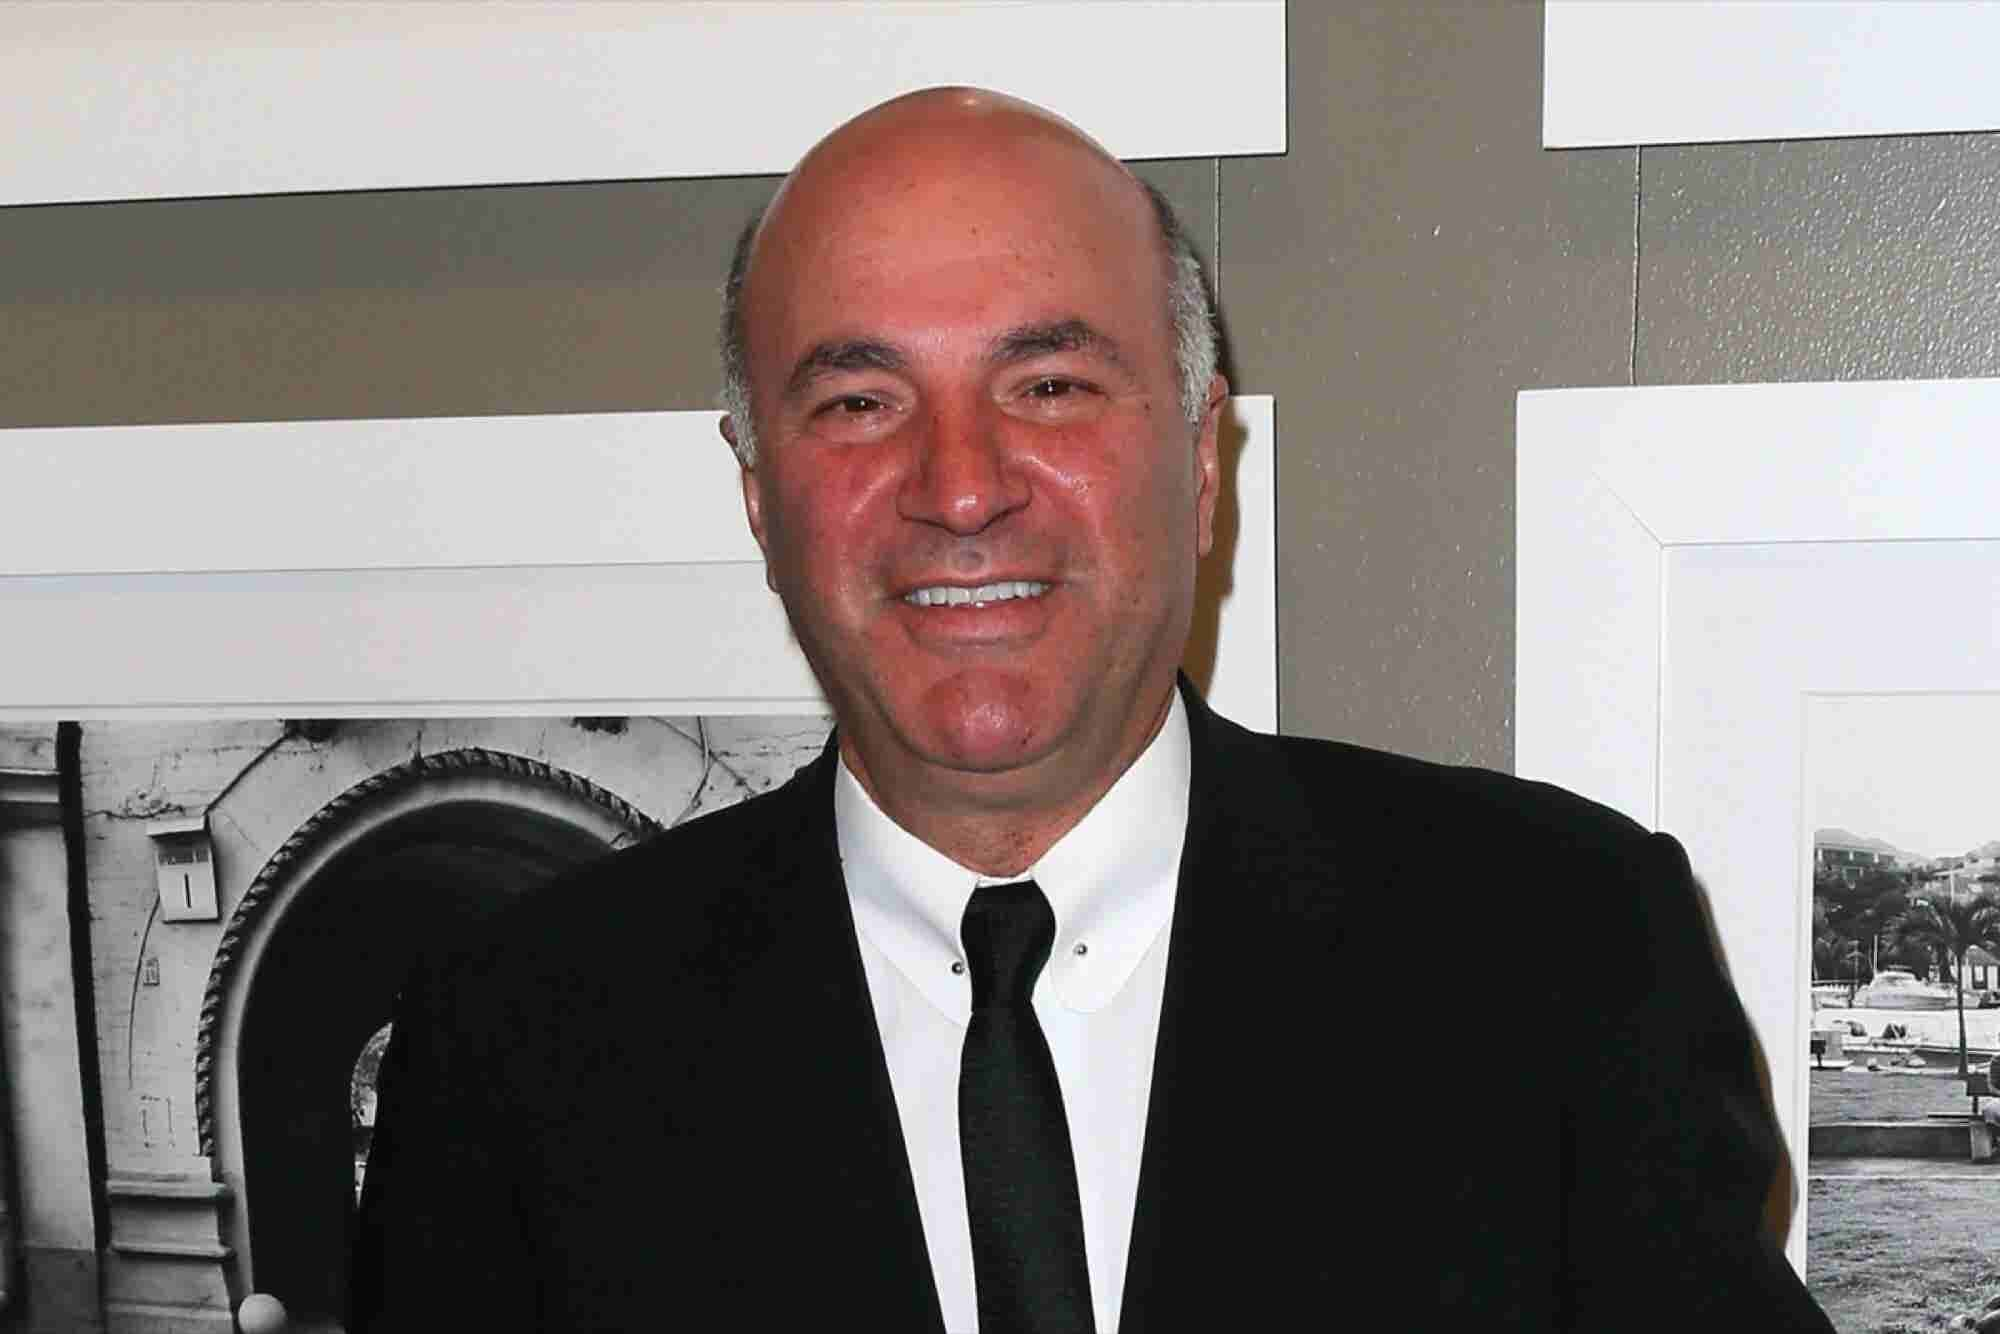 Shark Tank's Kevin O'Leary: Having Dyslexia Is a 'Superpower' in Business